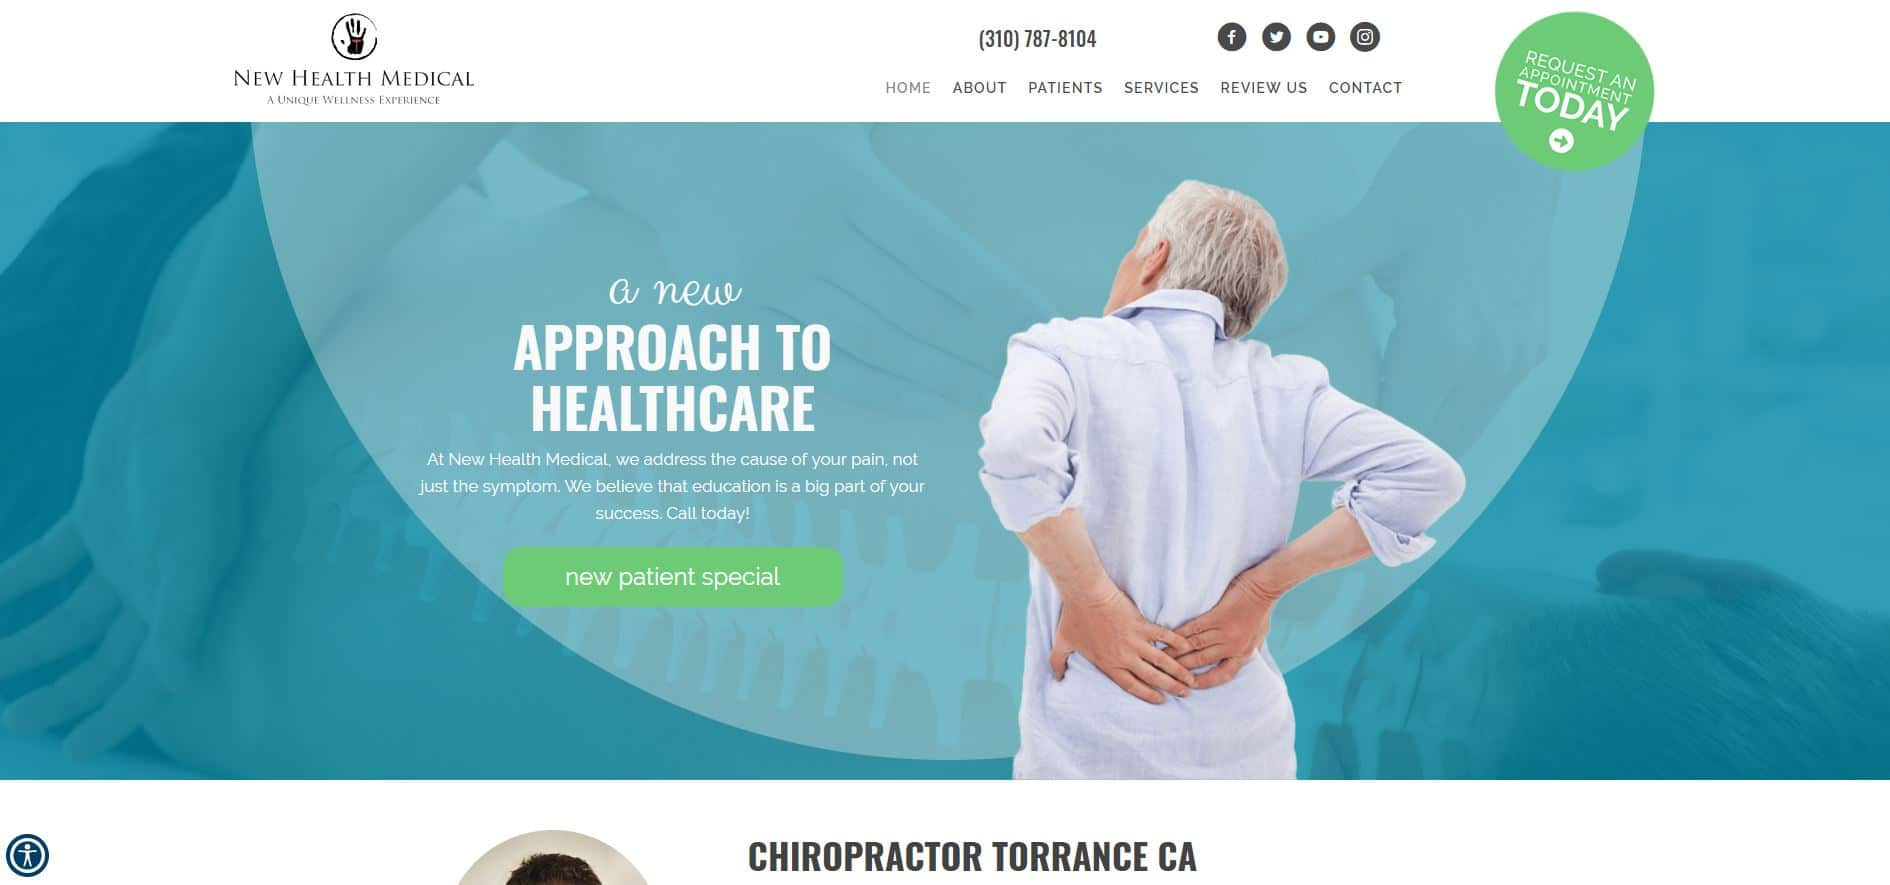 Chiropractor Torrance CA New Health Medical